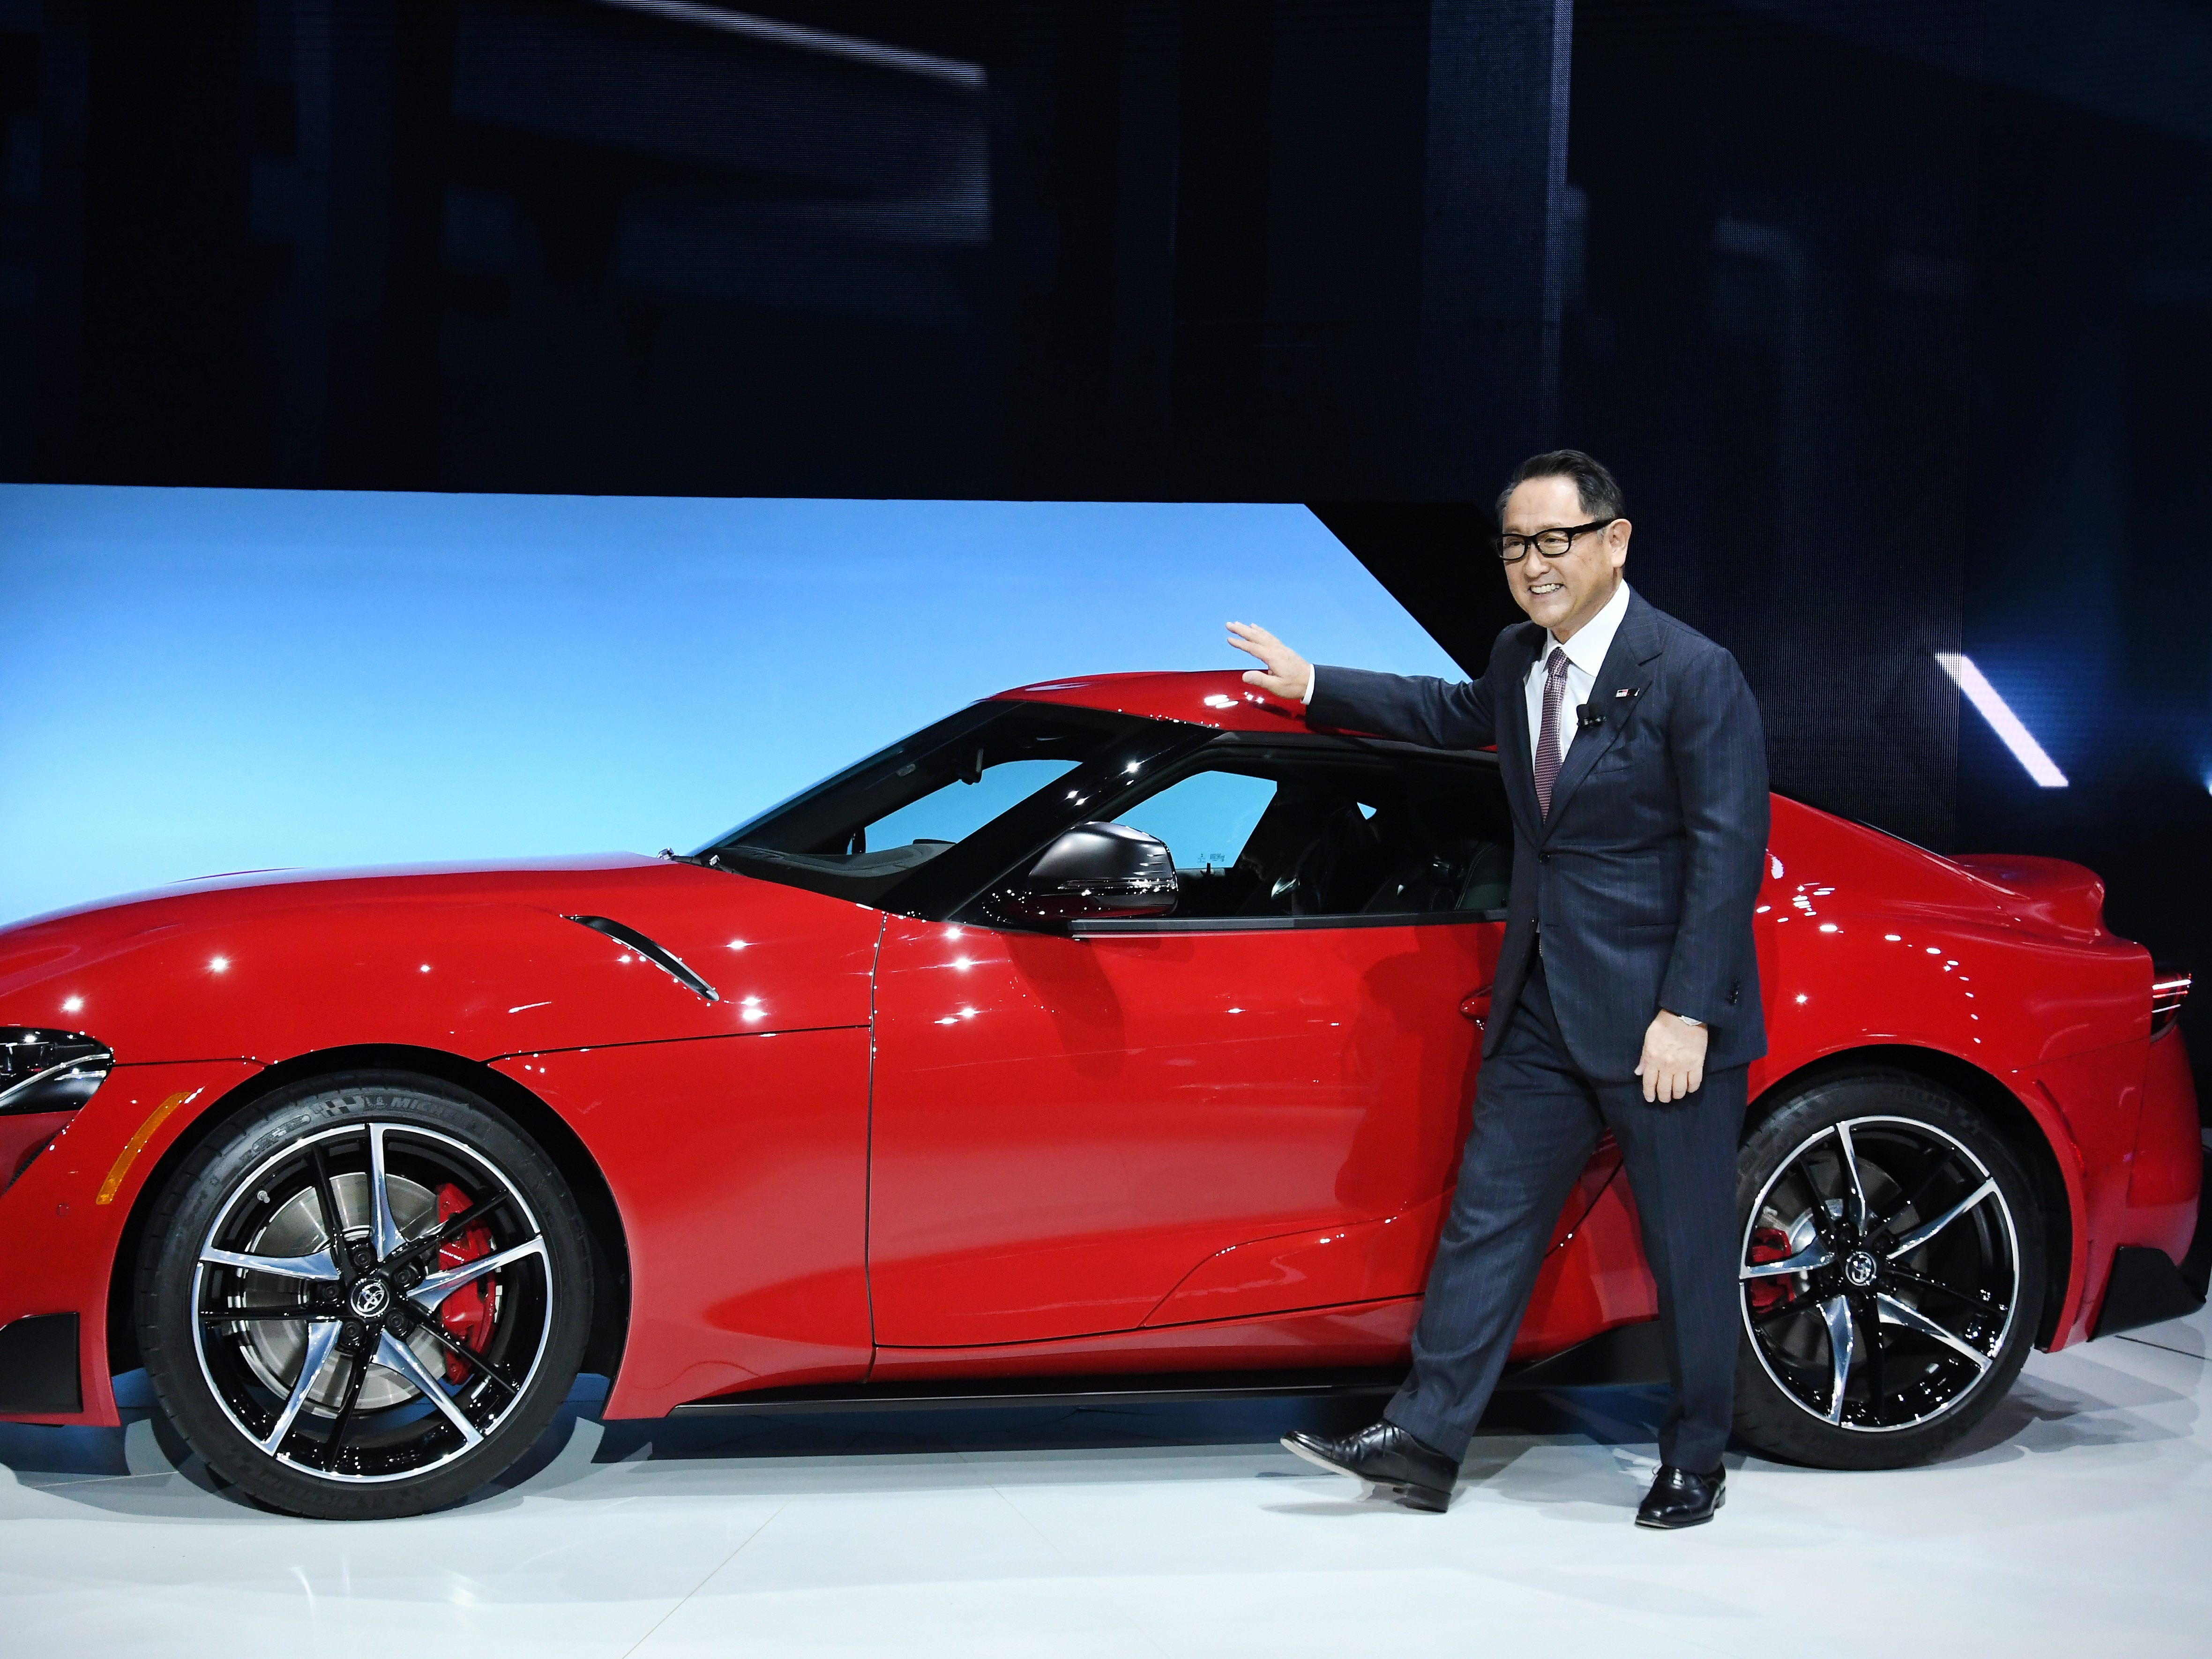 Toyota's President Akio Toyoda shows off the 2020 Toyota Supra at the North American International Auto Show in Detroit.